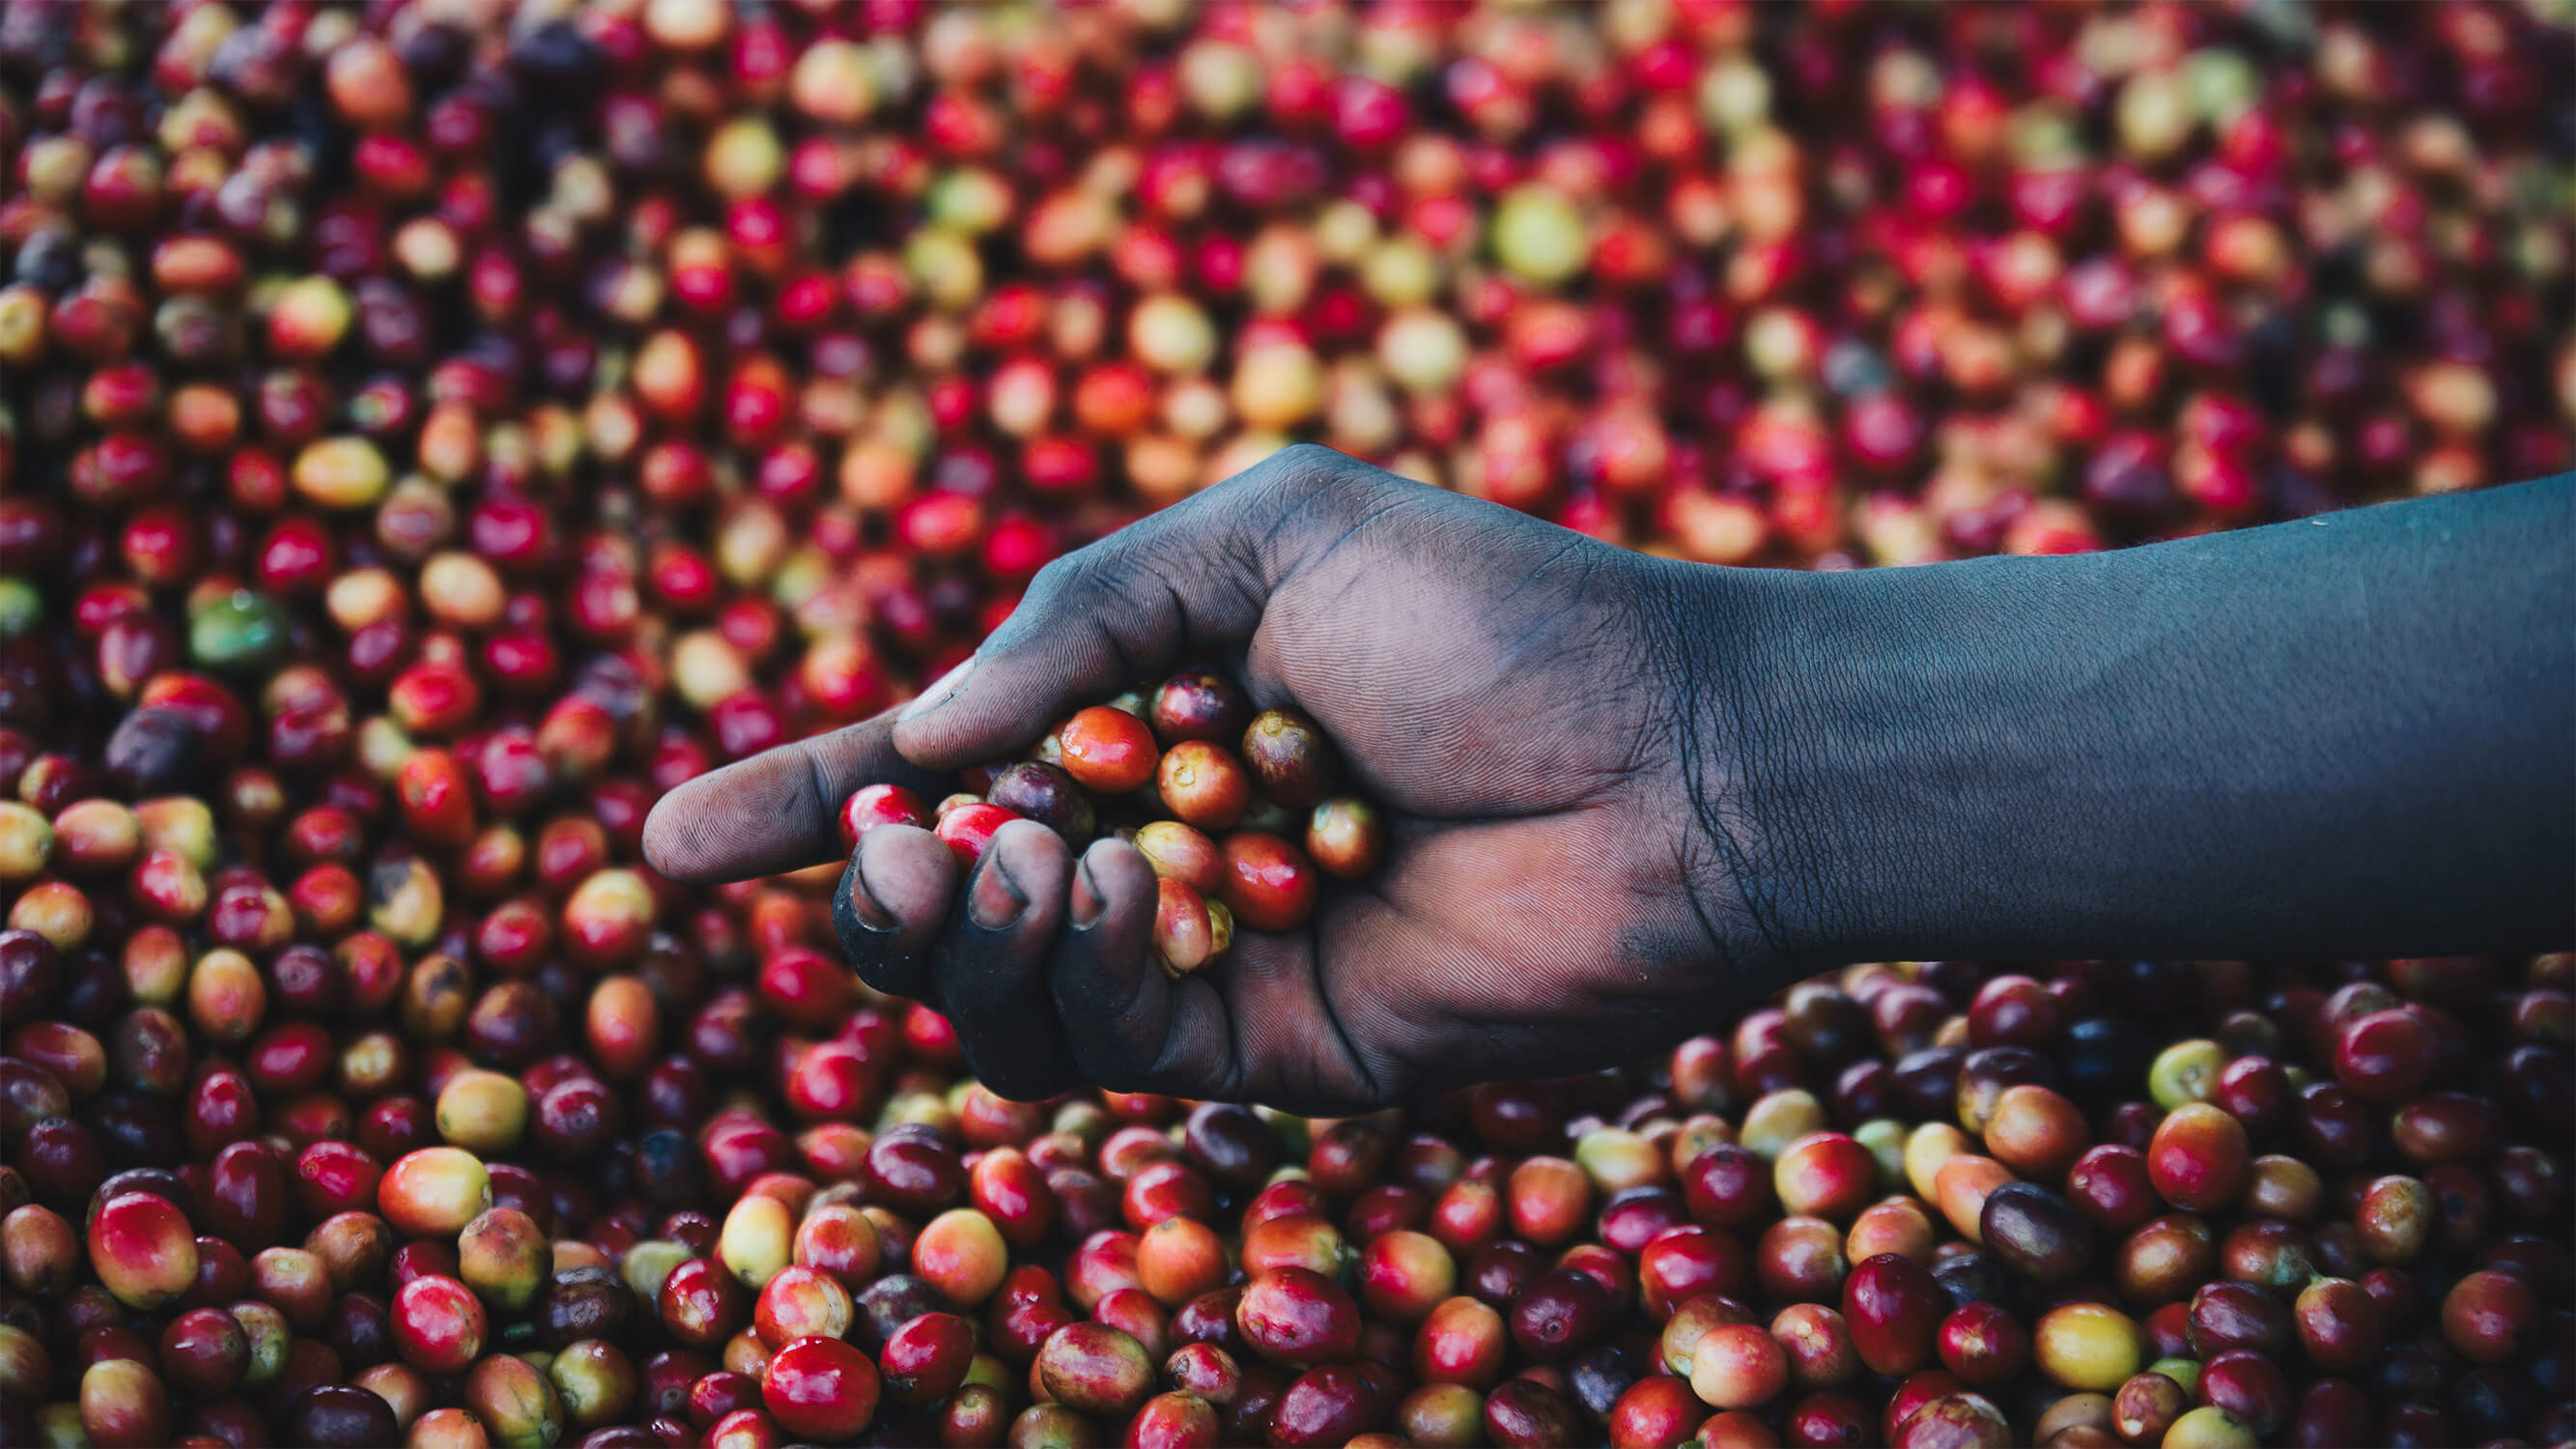 hand-holding-coffee-cherries